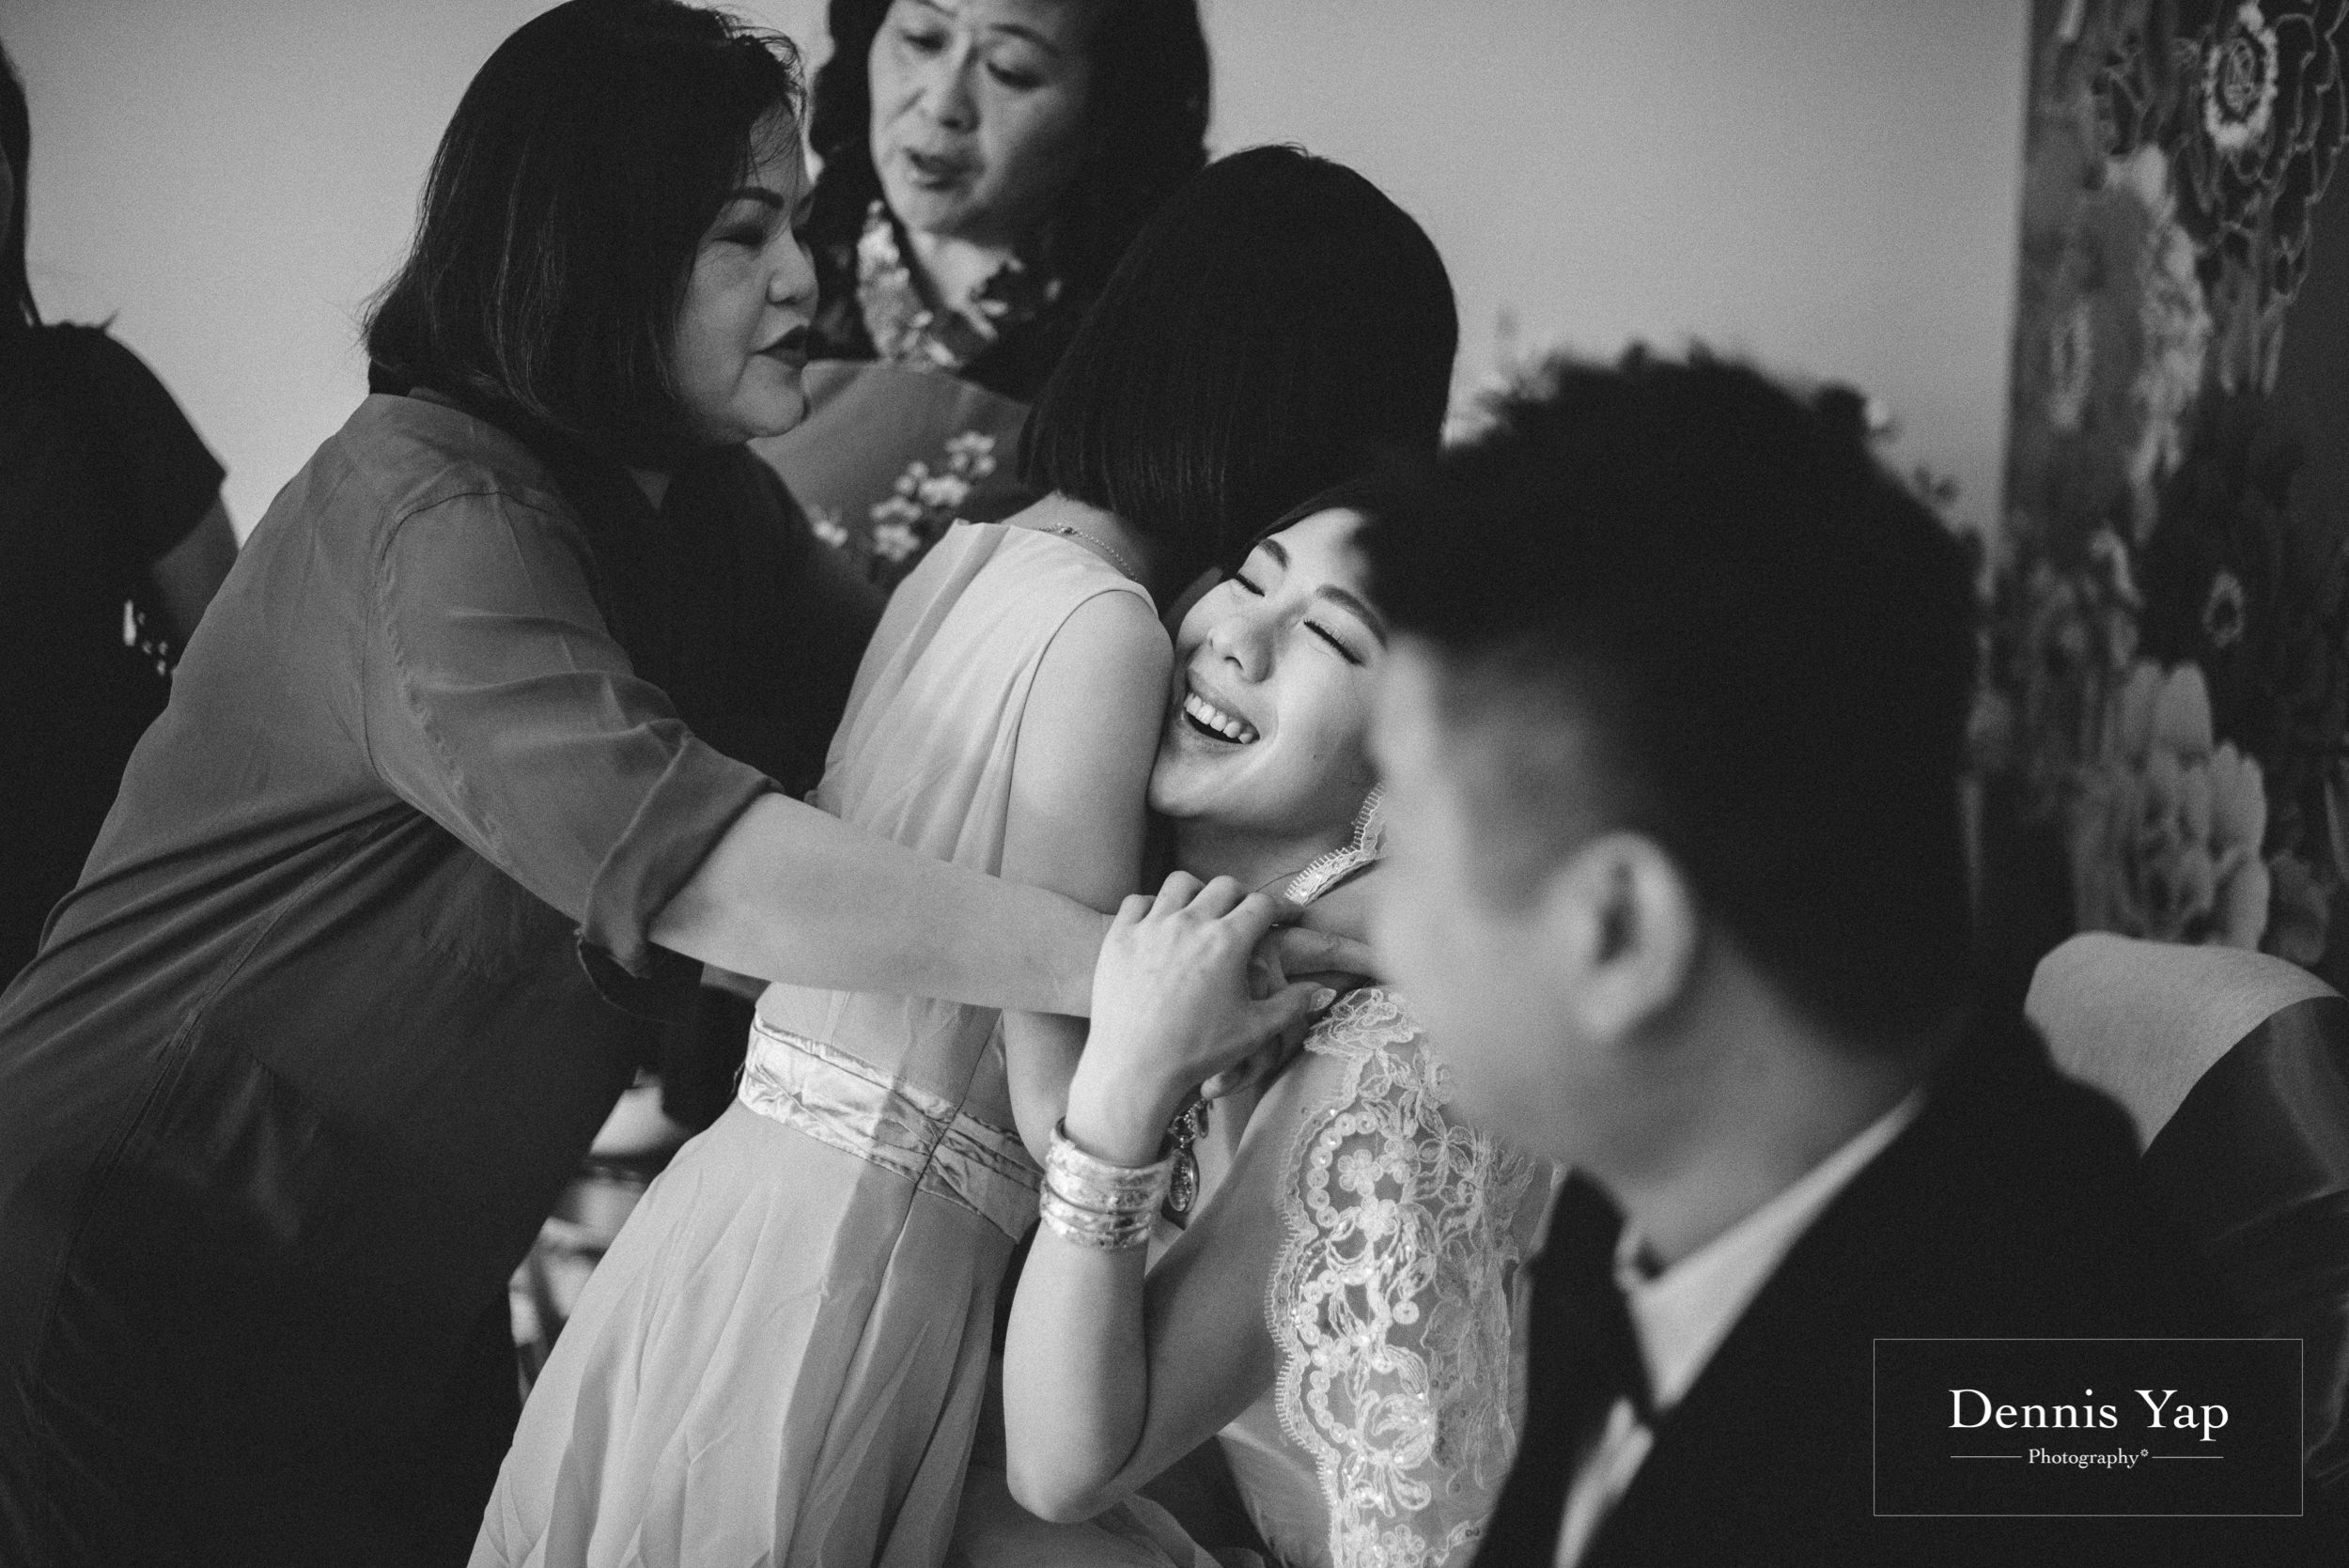 johnson joanne wedding gate crash malaysia wedding photographer dennis yap botanic klang-20.jpg